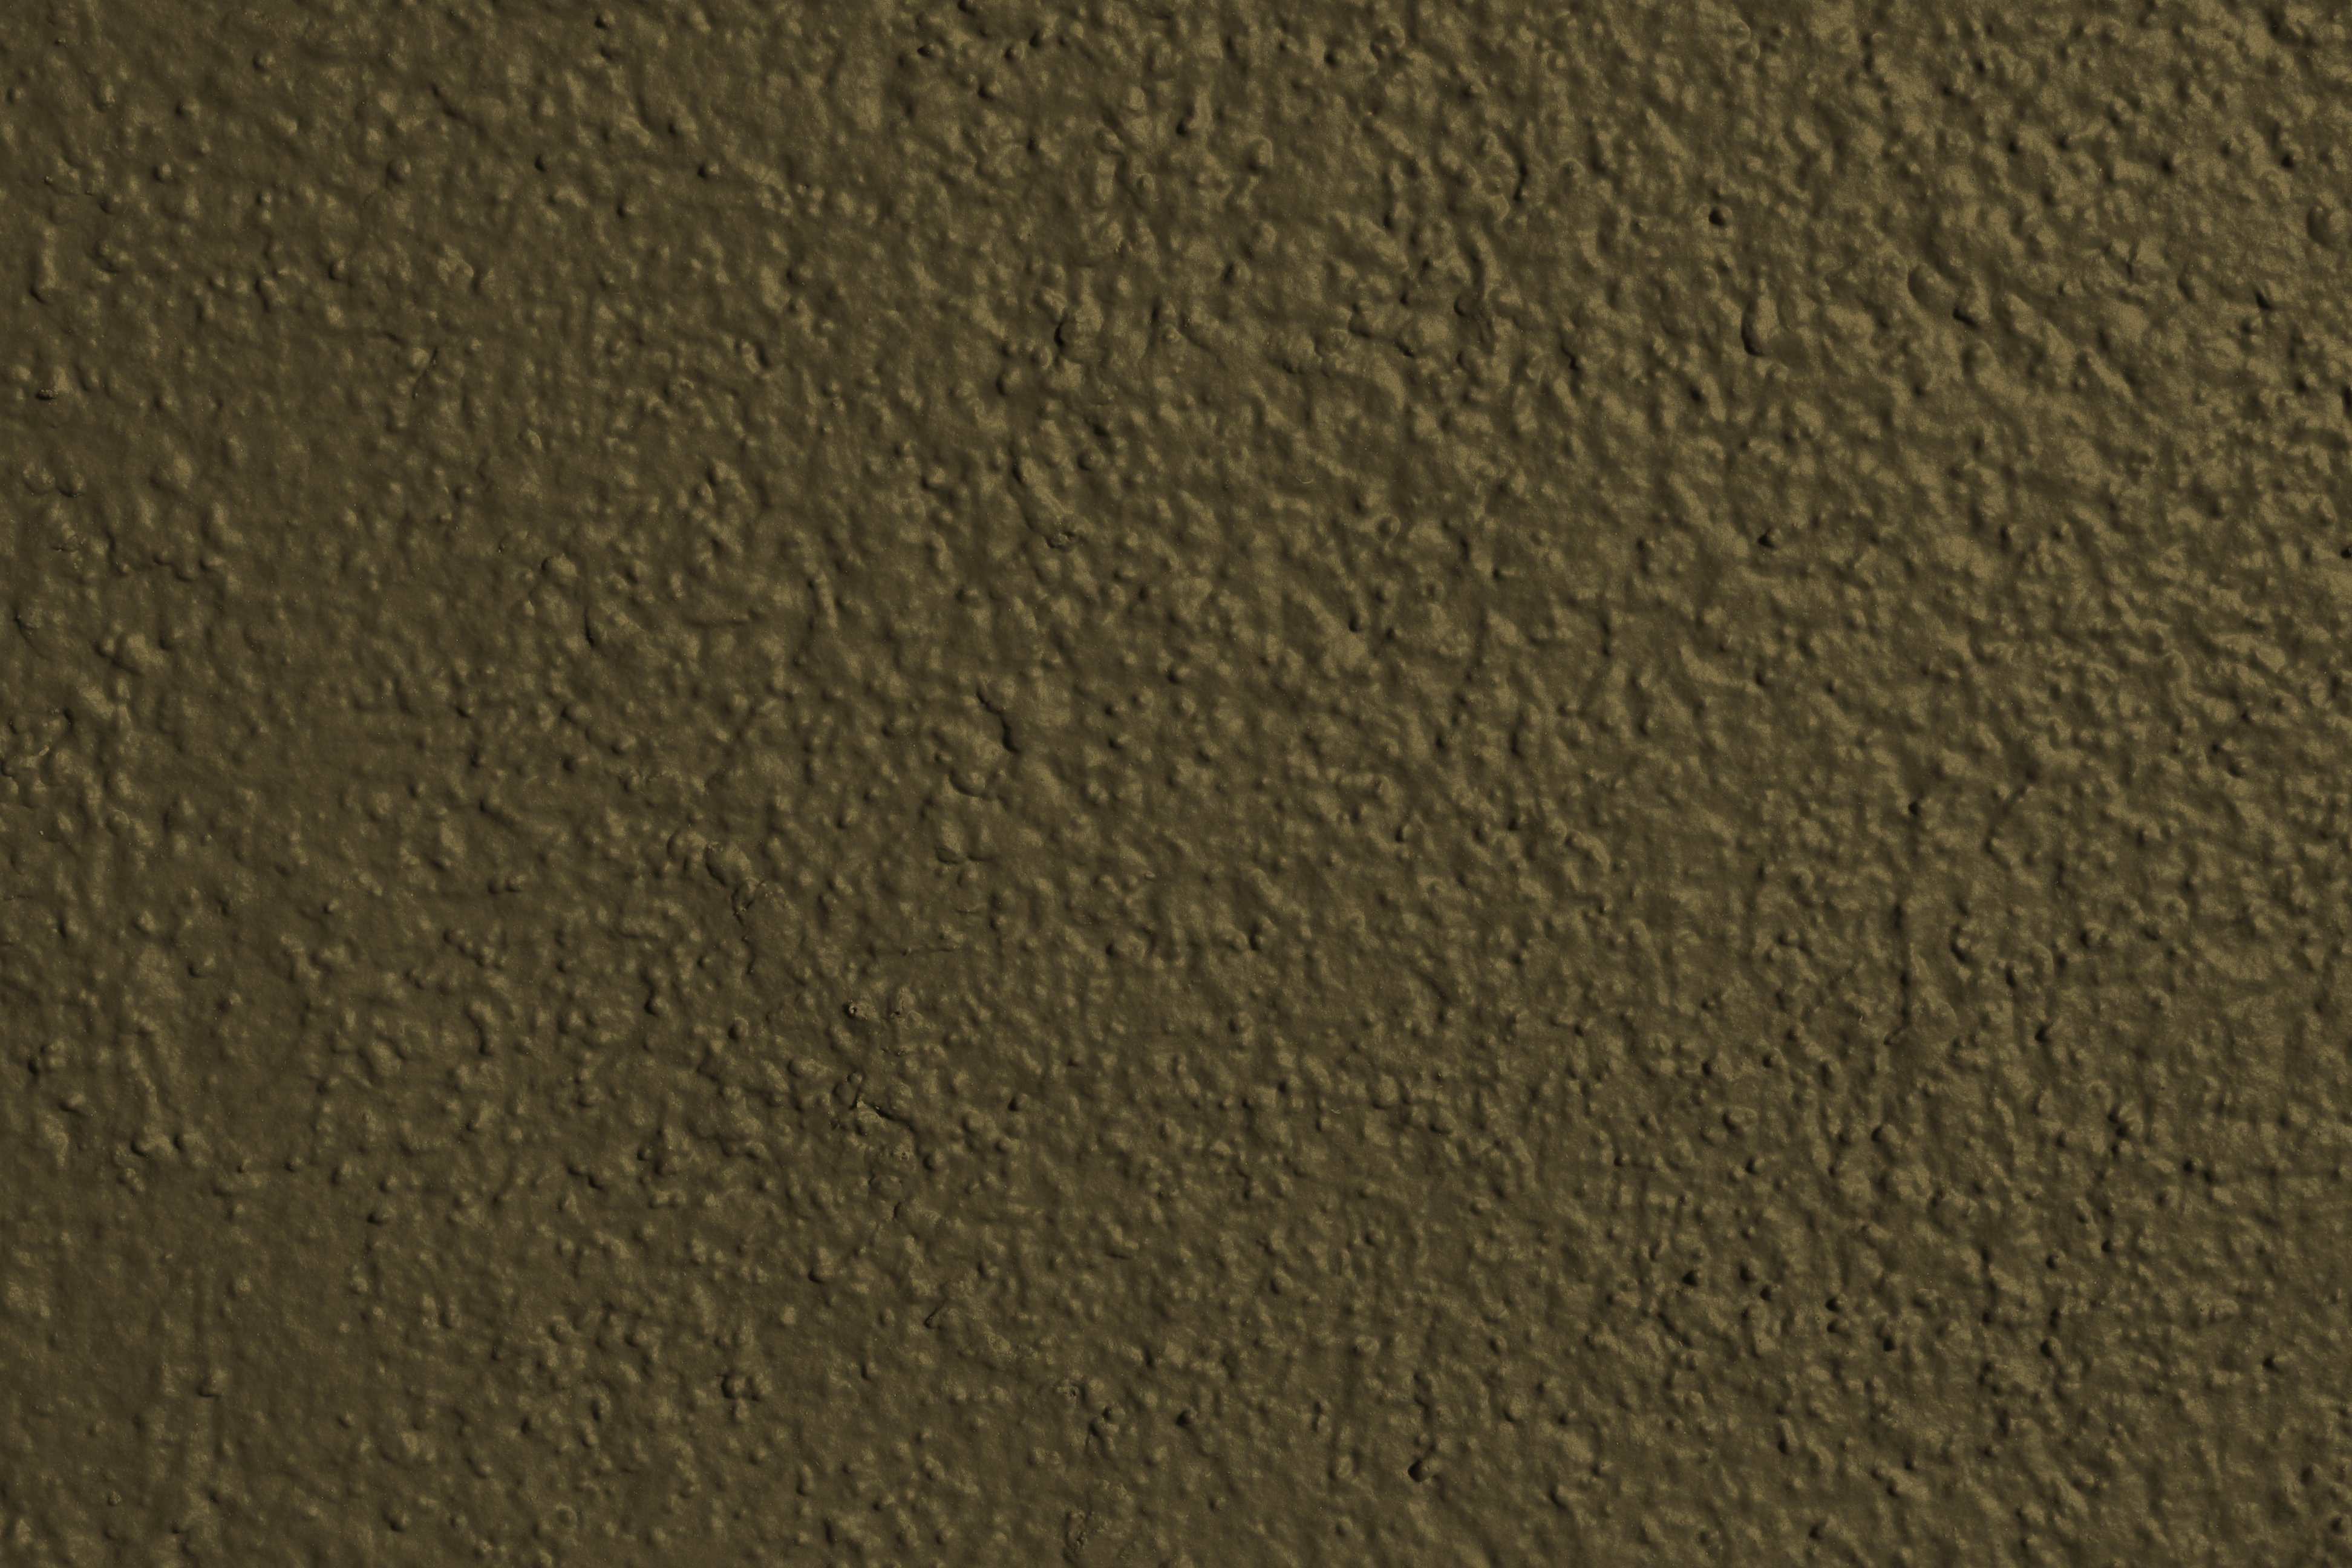 Army Green Colored Painted Wall Texture Picture Free